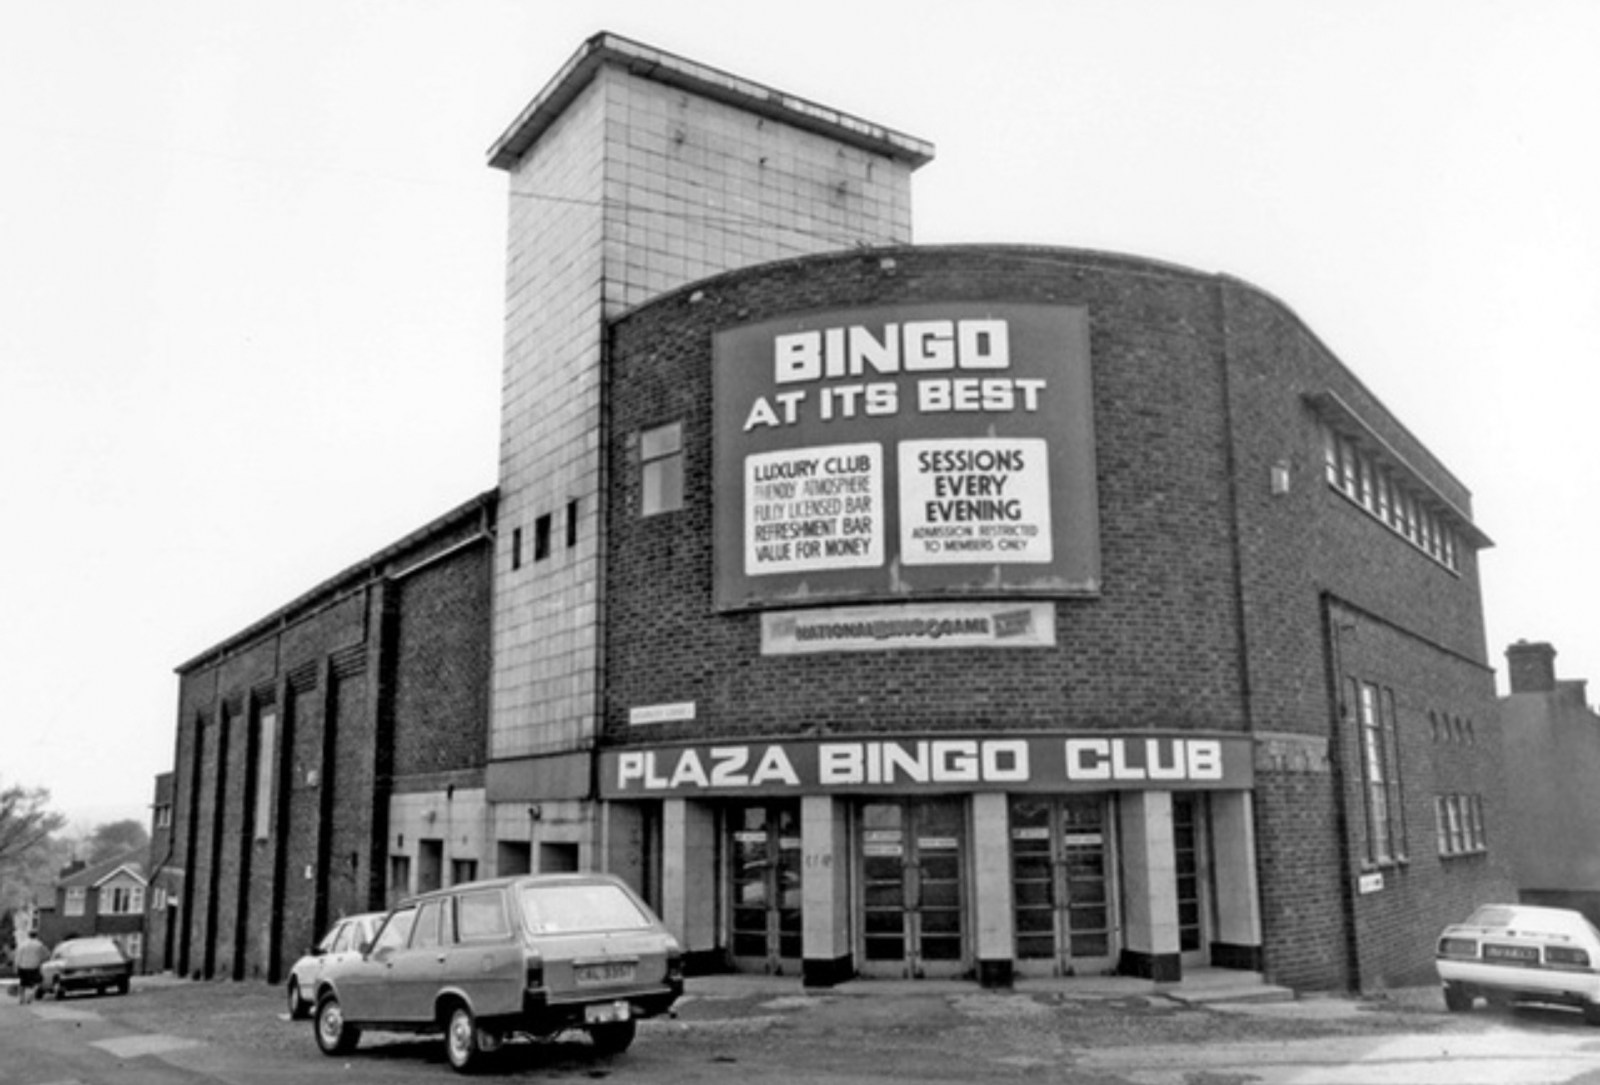 Plaza Bingo Club Sheffield.jpg